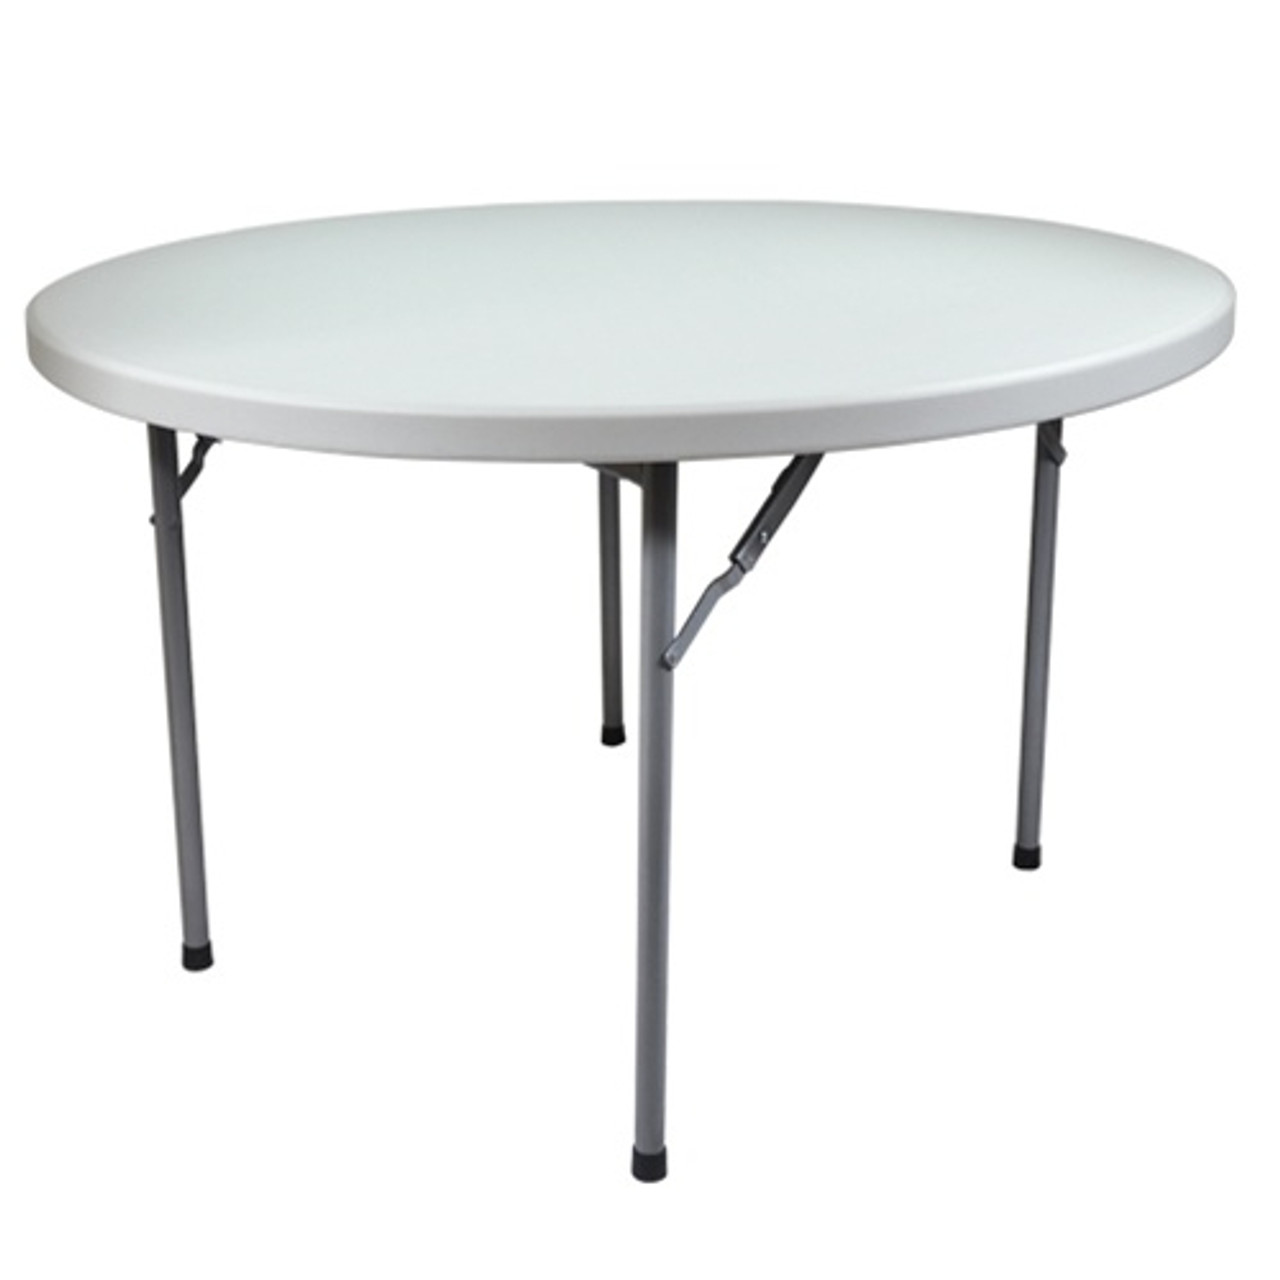 Round Plastic Folding Table [FTD72R] Seats 10 Adults